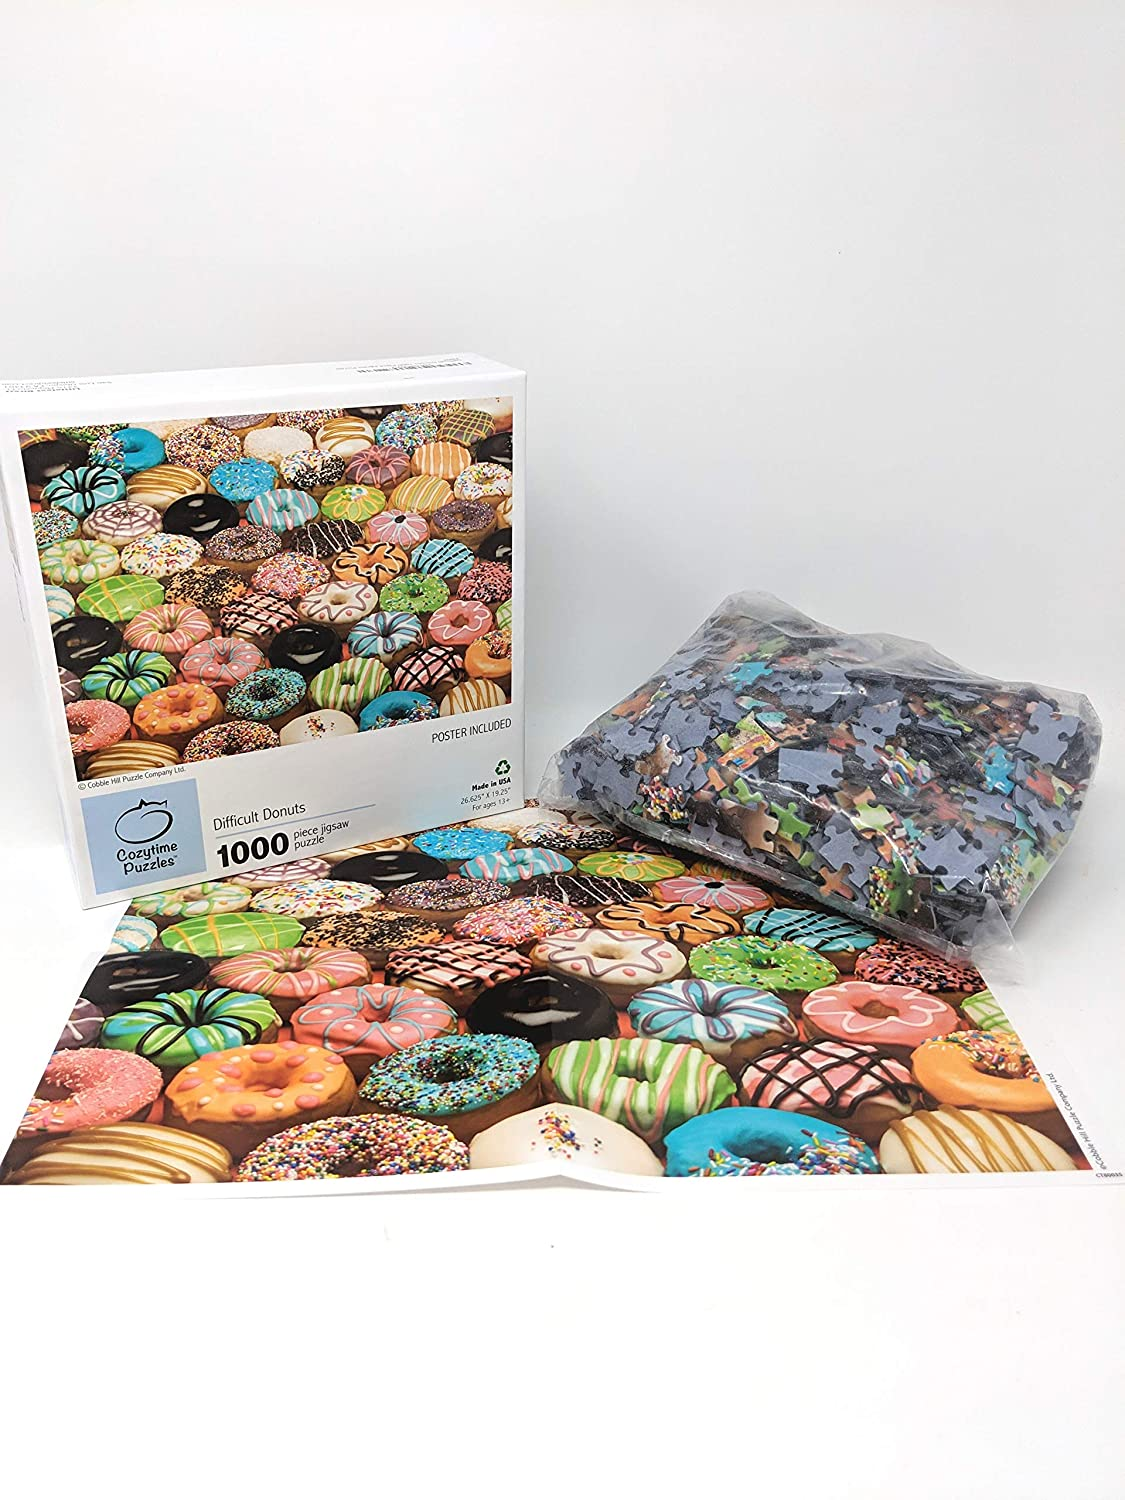 1000 Pieces Littlefeet Direct Jigsaw Puzzle Difficult Donuts